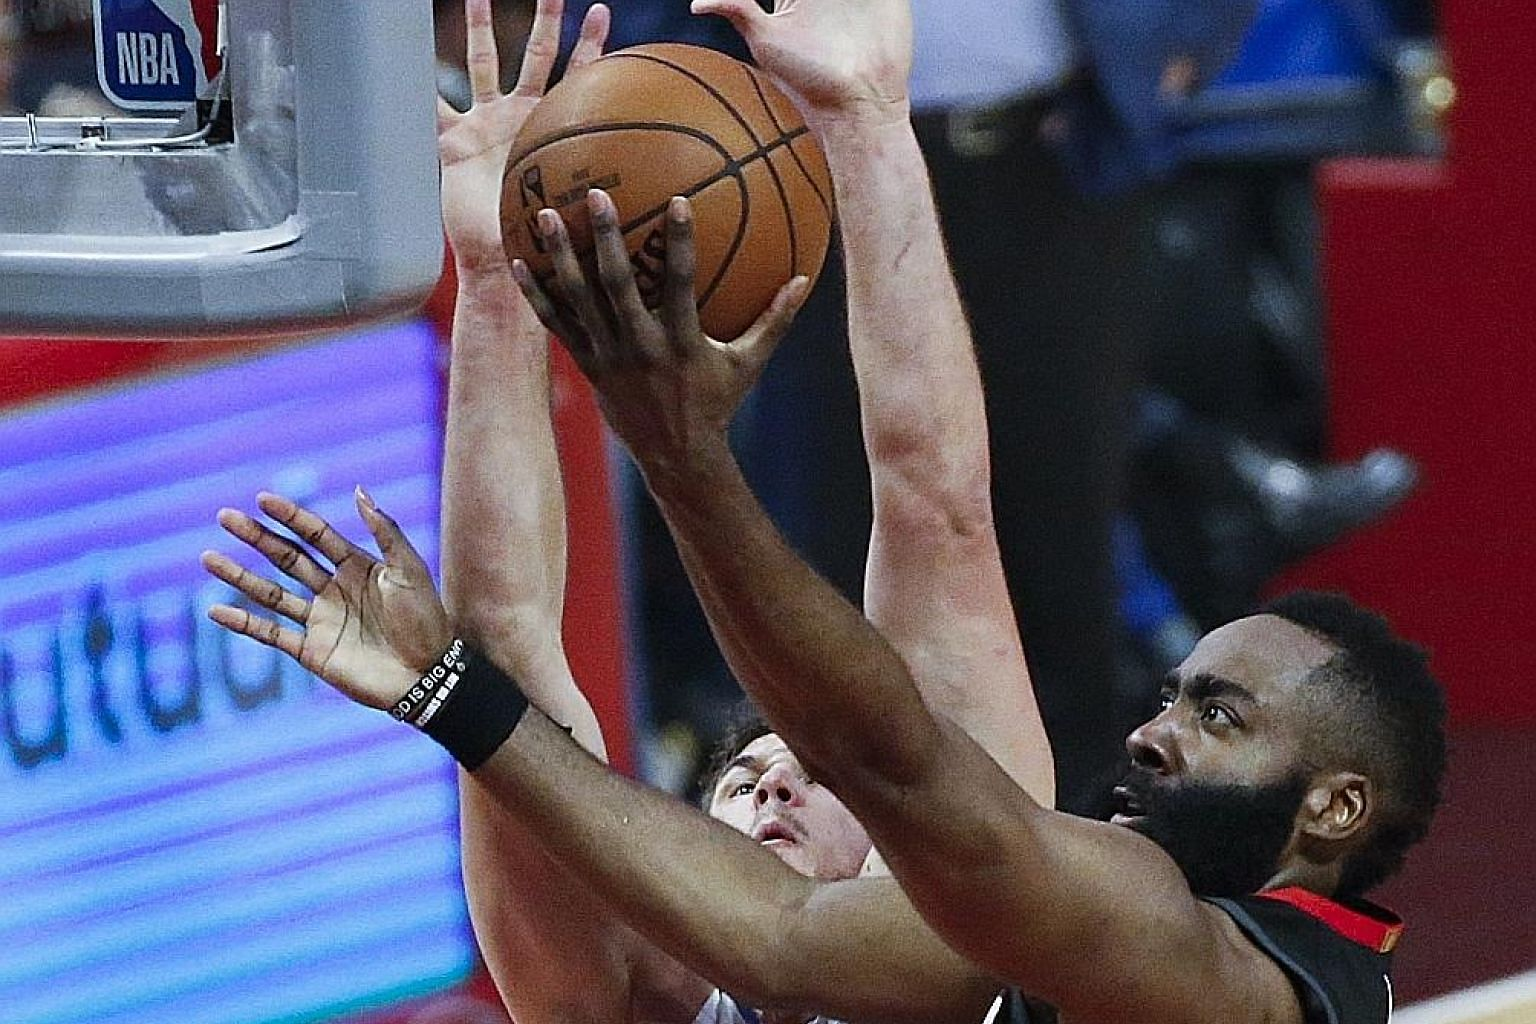 Houston Rockets star James Harden going for a basket as the LA Clippers' Danilo Gallinari blocks him in their NBA game at the Staples Centre on Wednesday.